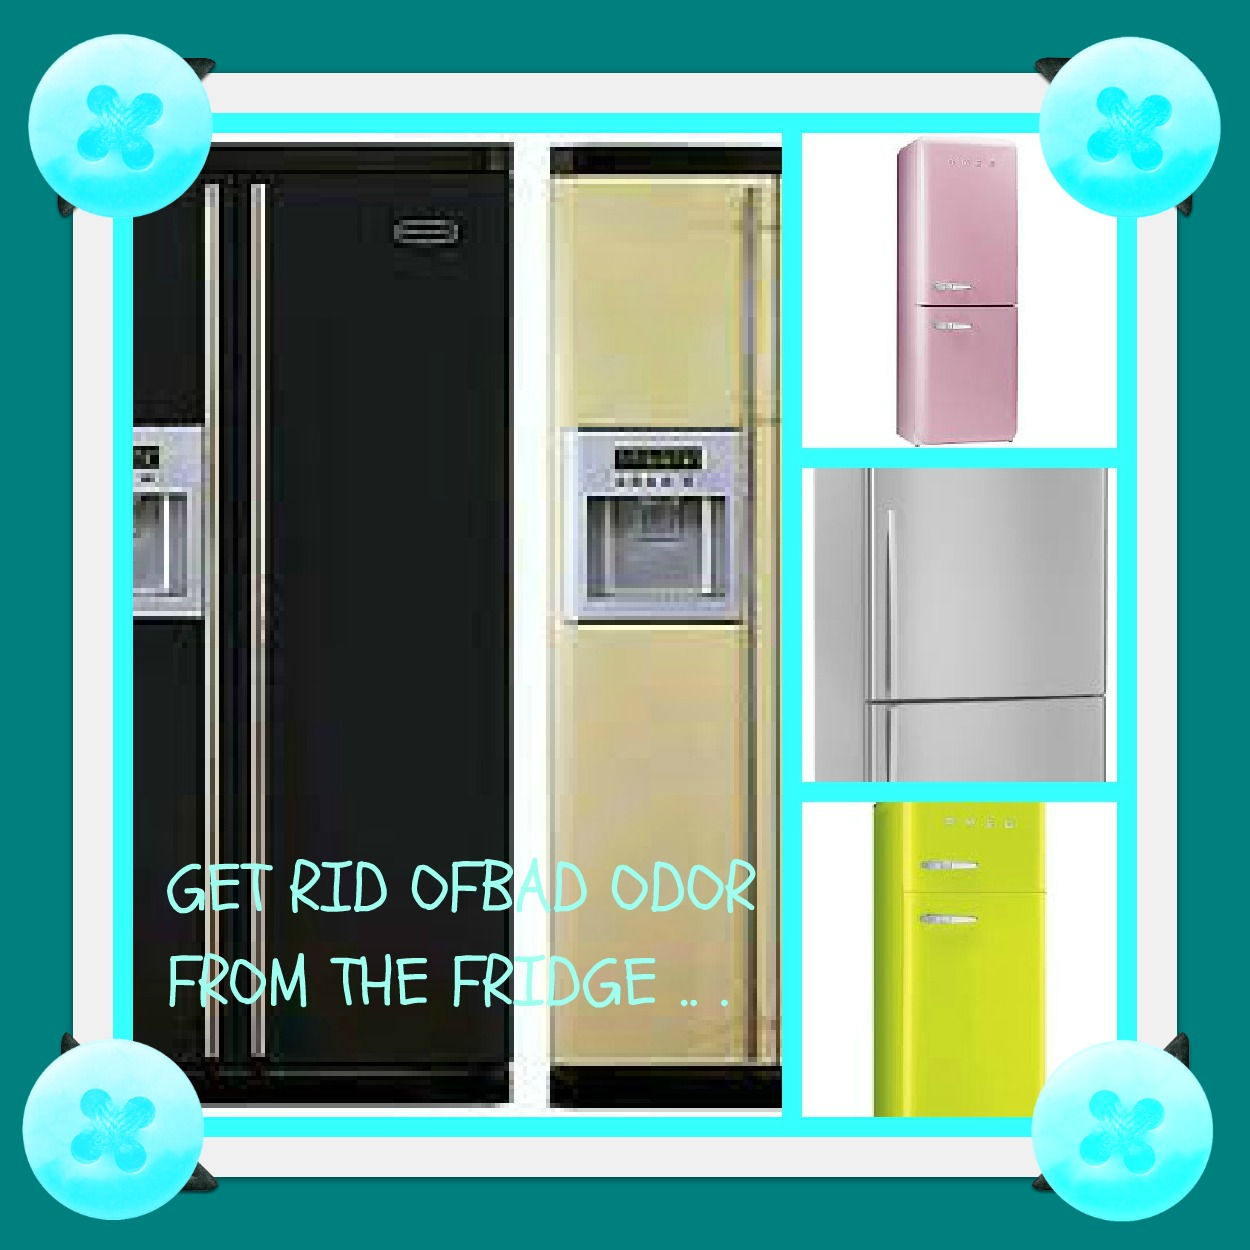 USHA'S KITCHEN: How 2 Get Rid Of Bad Smells In Your Fridge